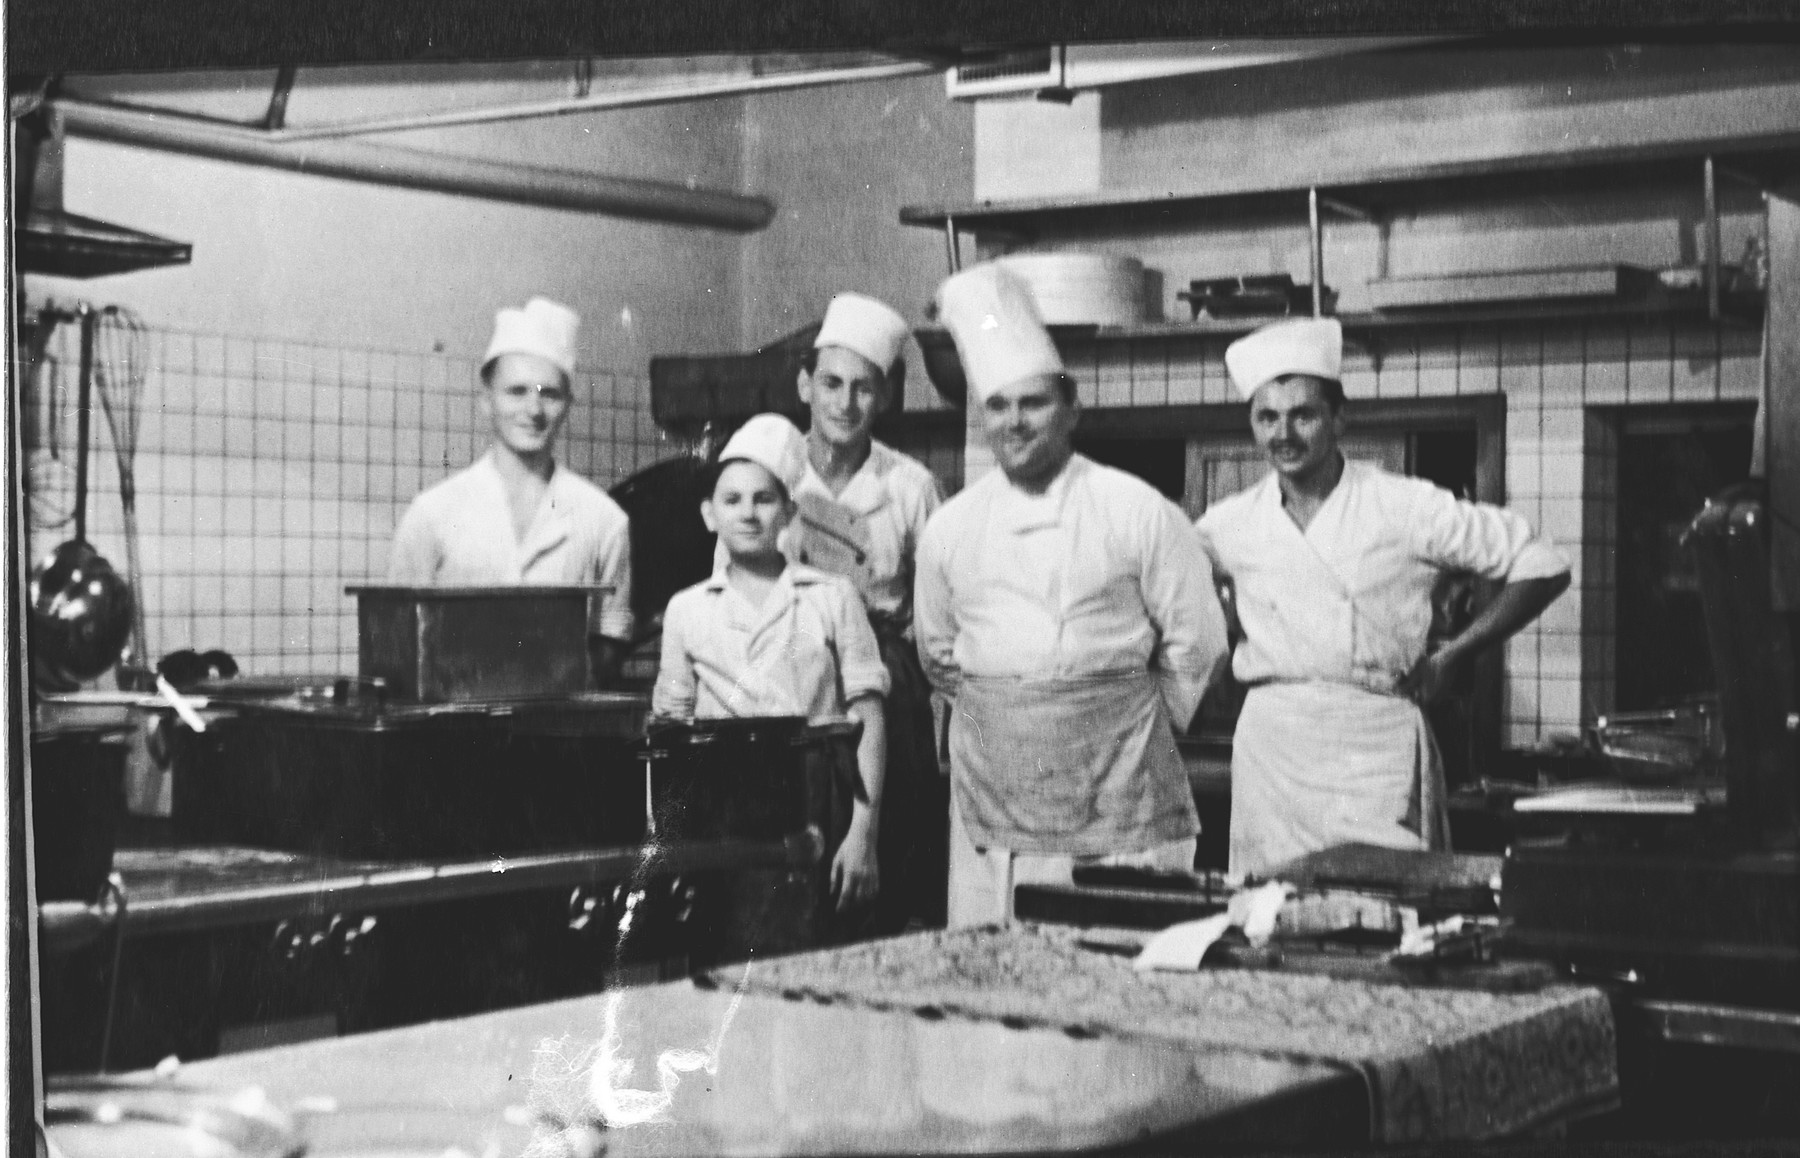 Group portrait of cooks in a kitchen in Prague during the Nazi occupation.  Among those pictured is Edgar Krasa, who was working as an apprentice chef.